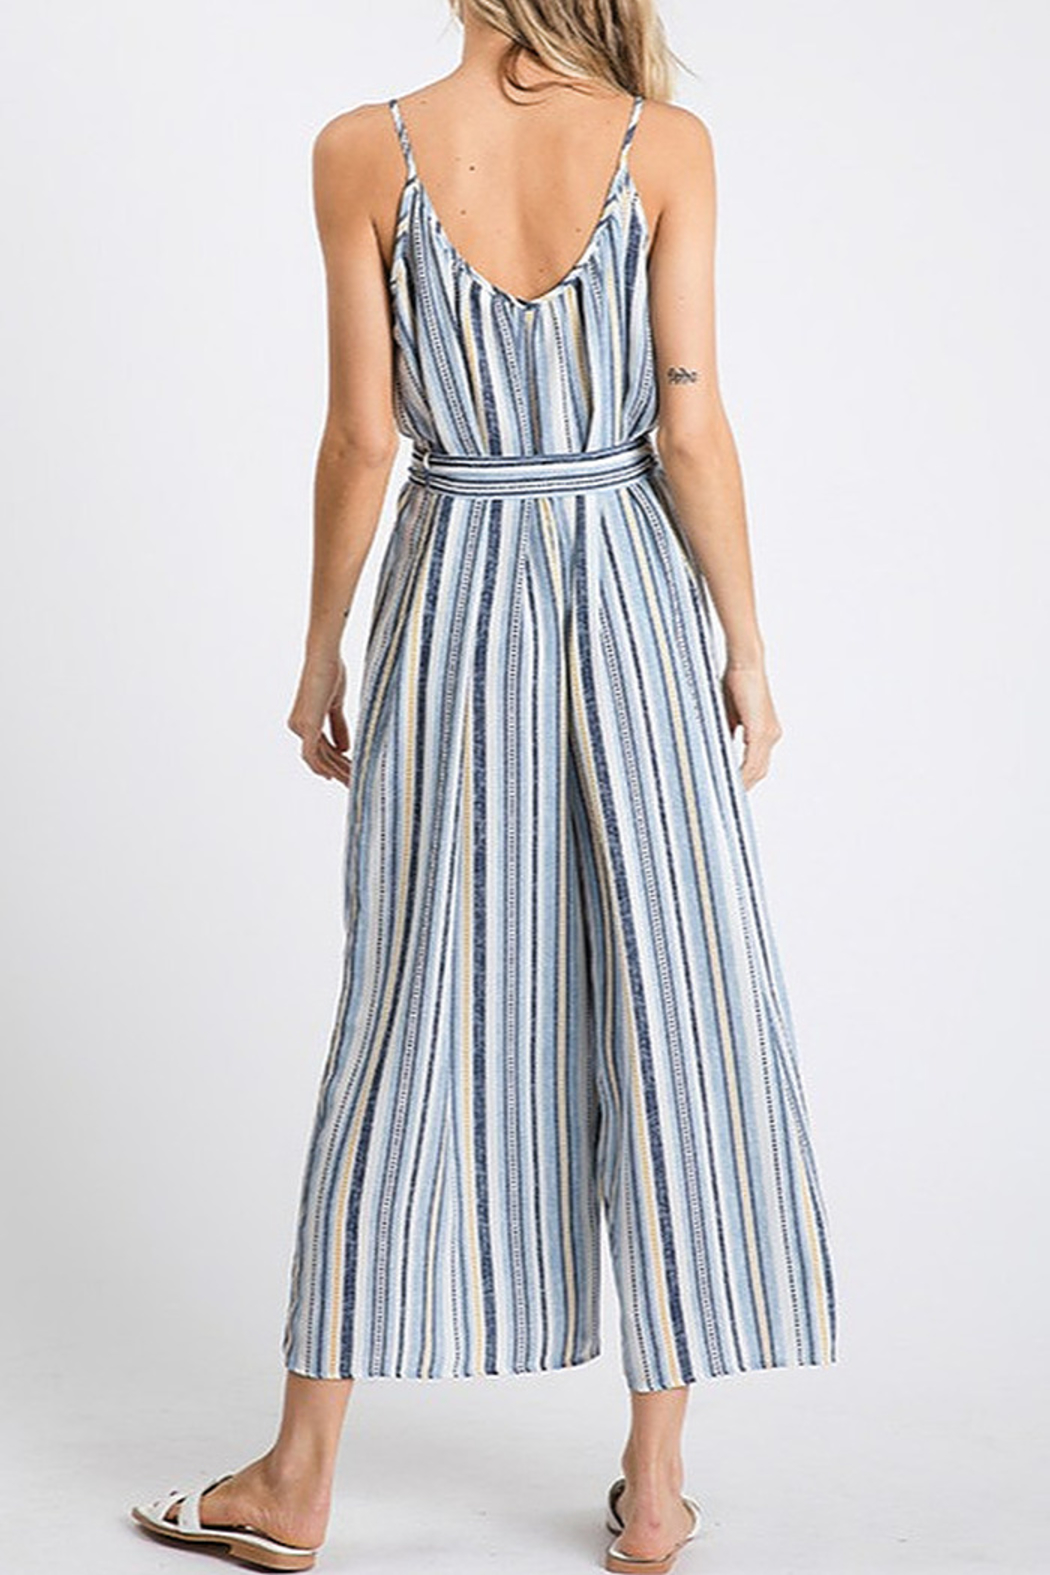 CY Fashion Blue Stripe Jumpsuit - Front Full Image